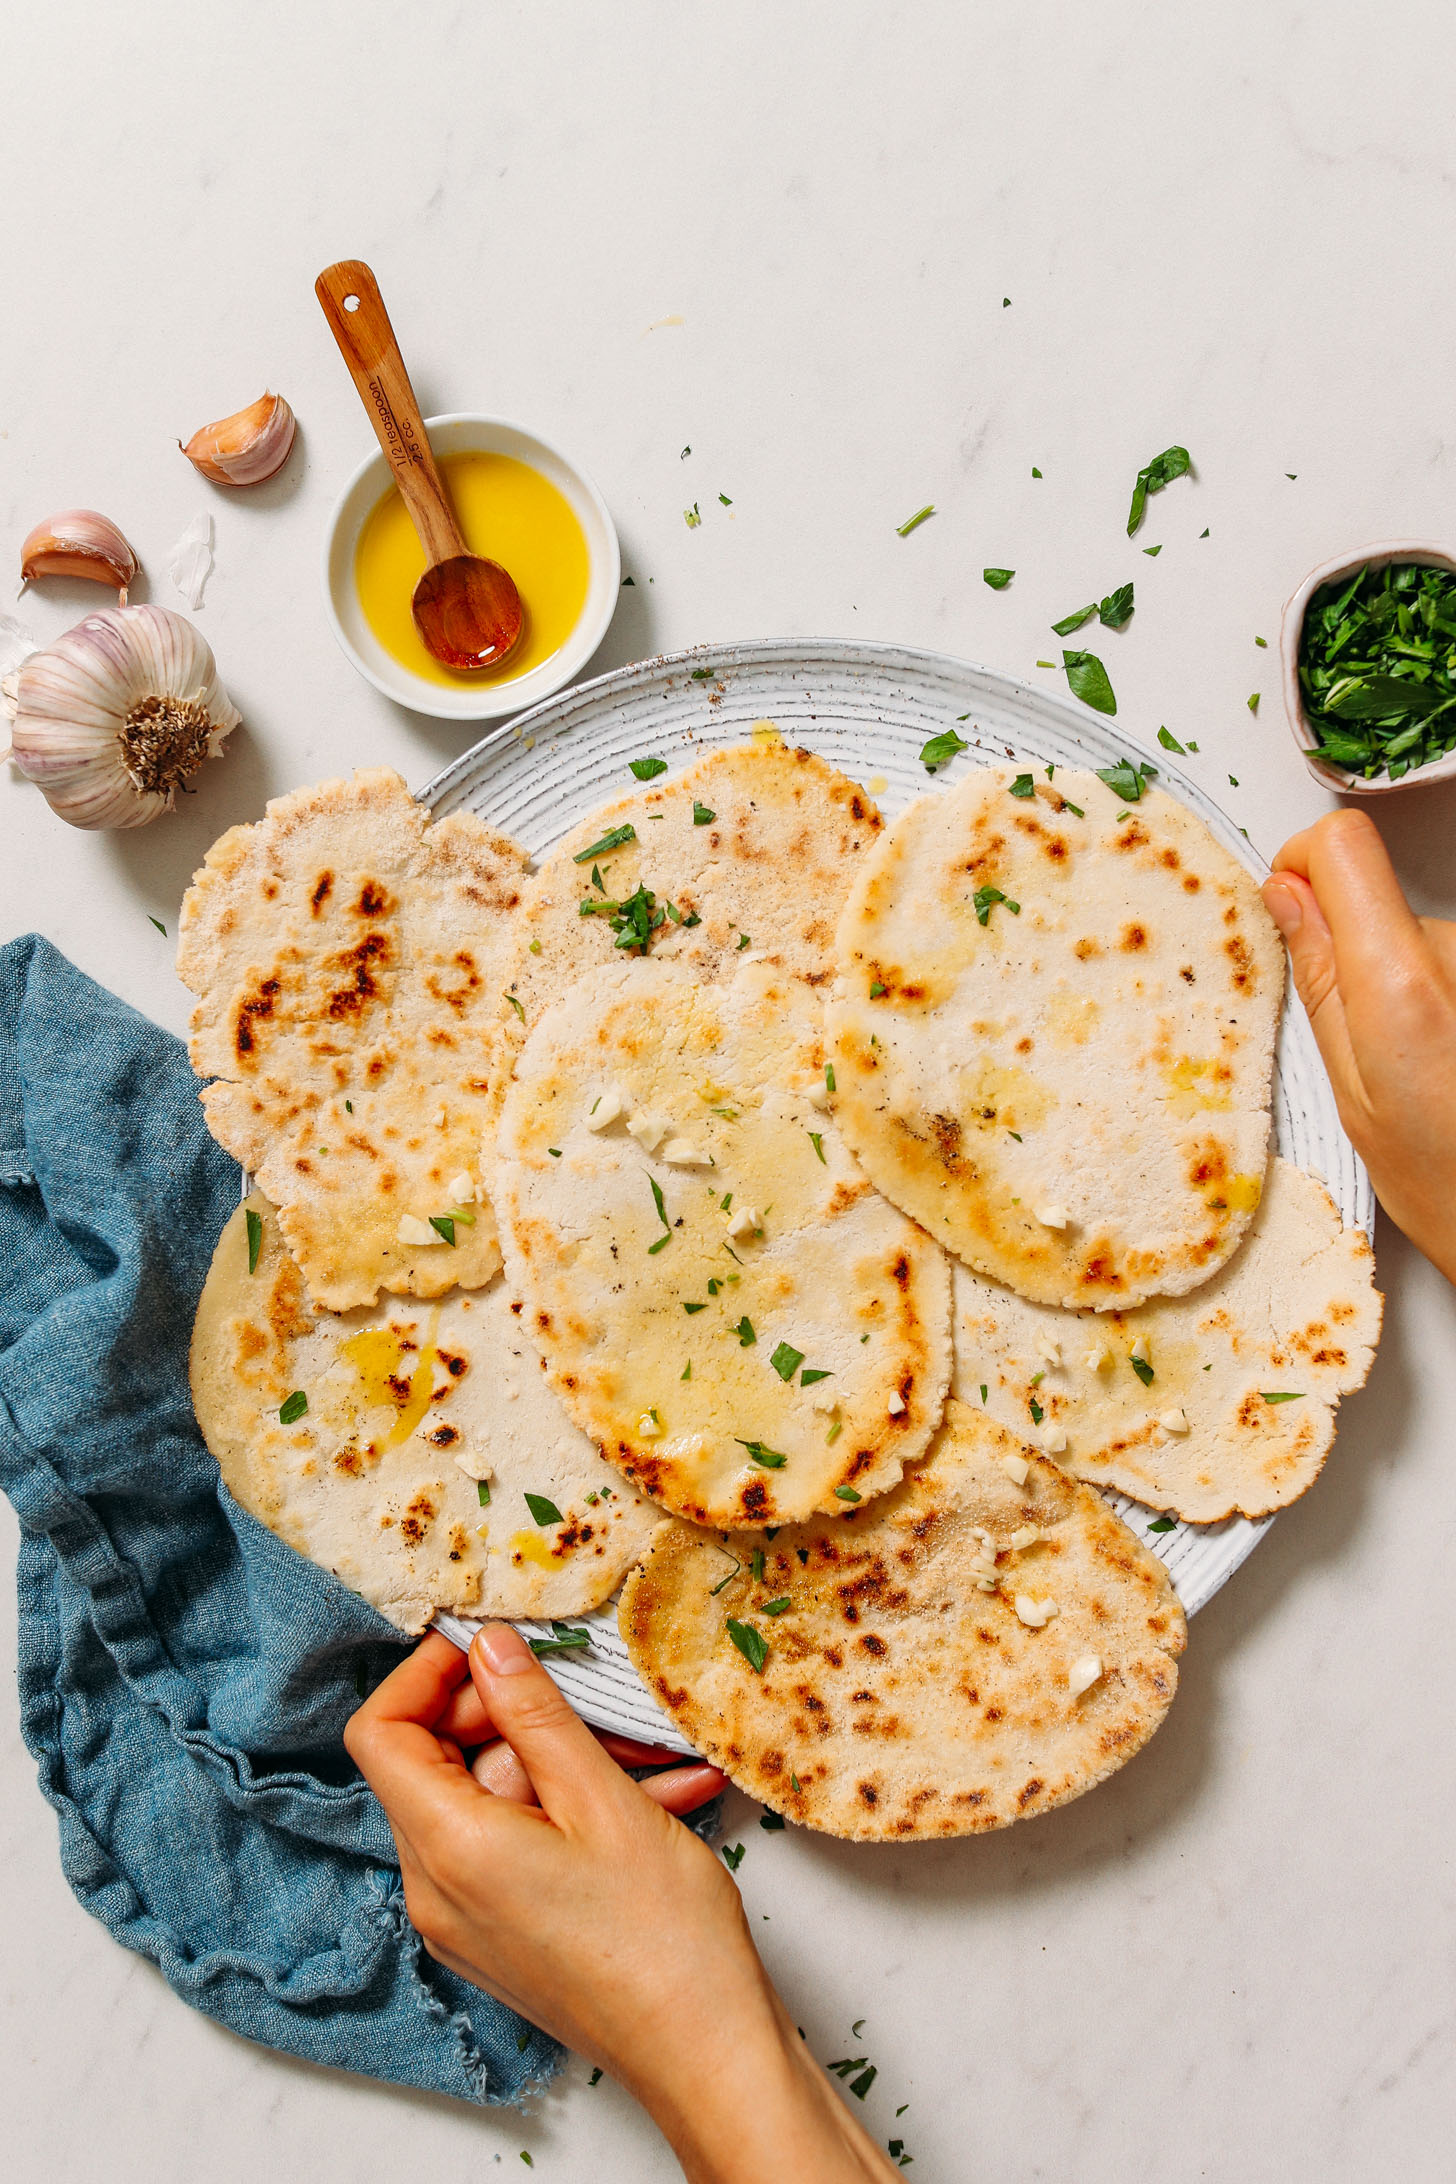 Holding a platter of gluten free naan topped with olive oil, garlic, and fresh parsley